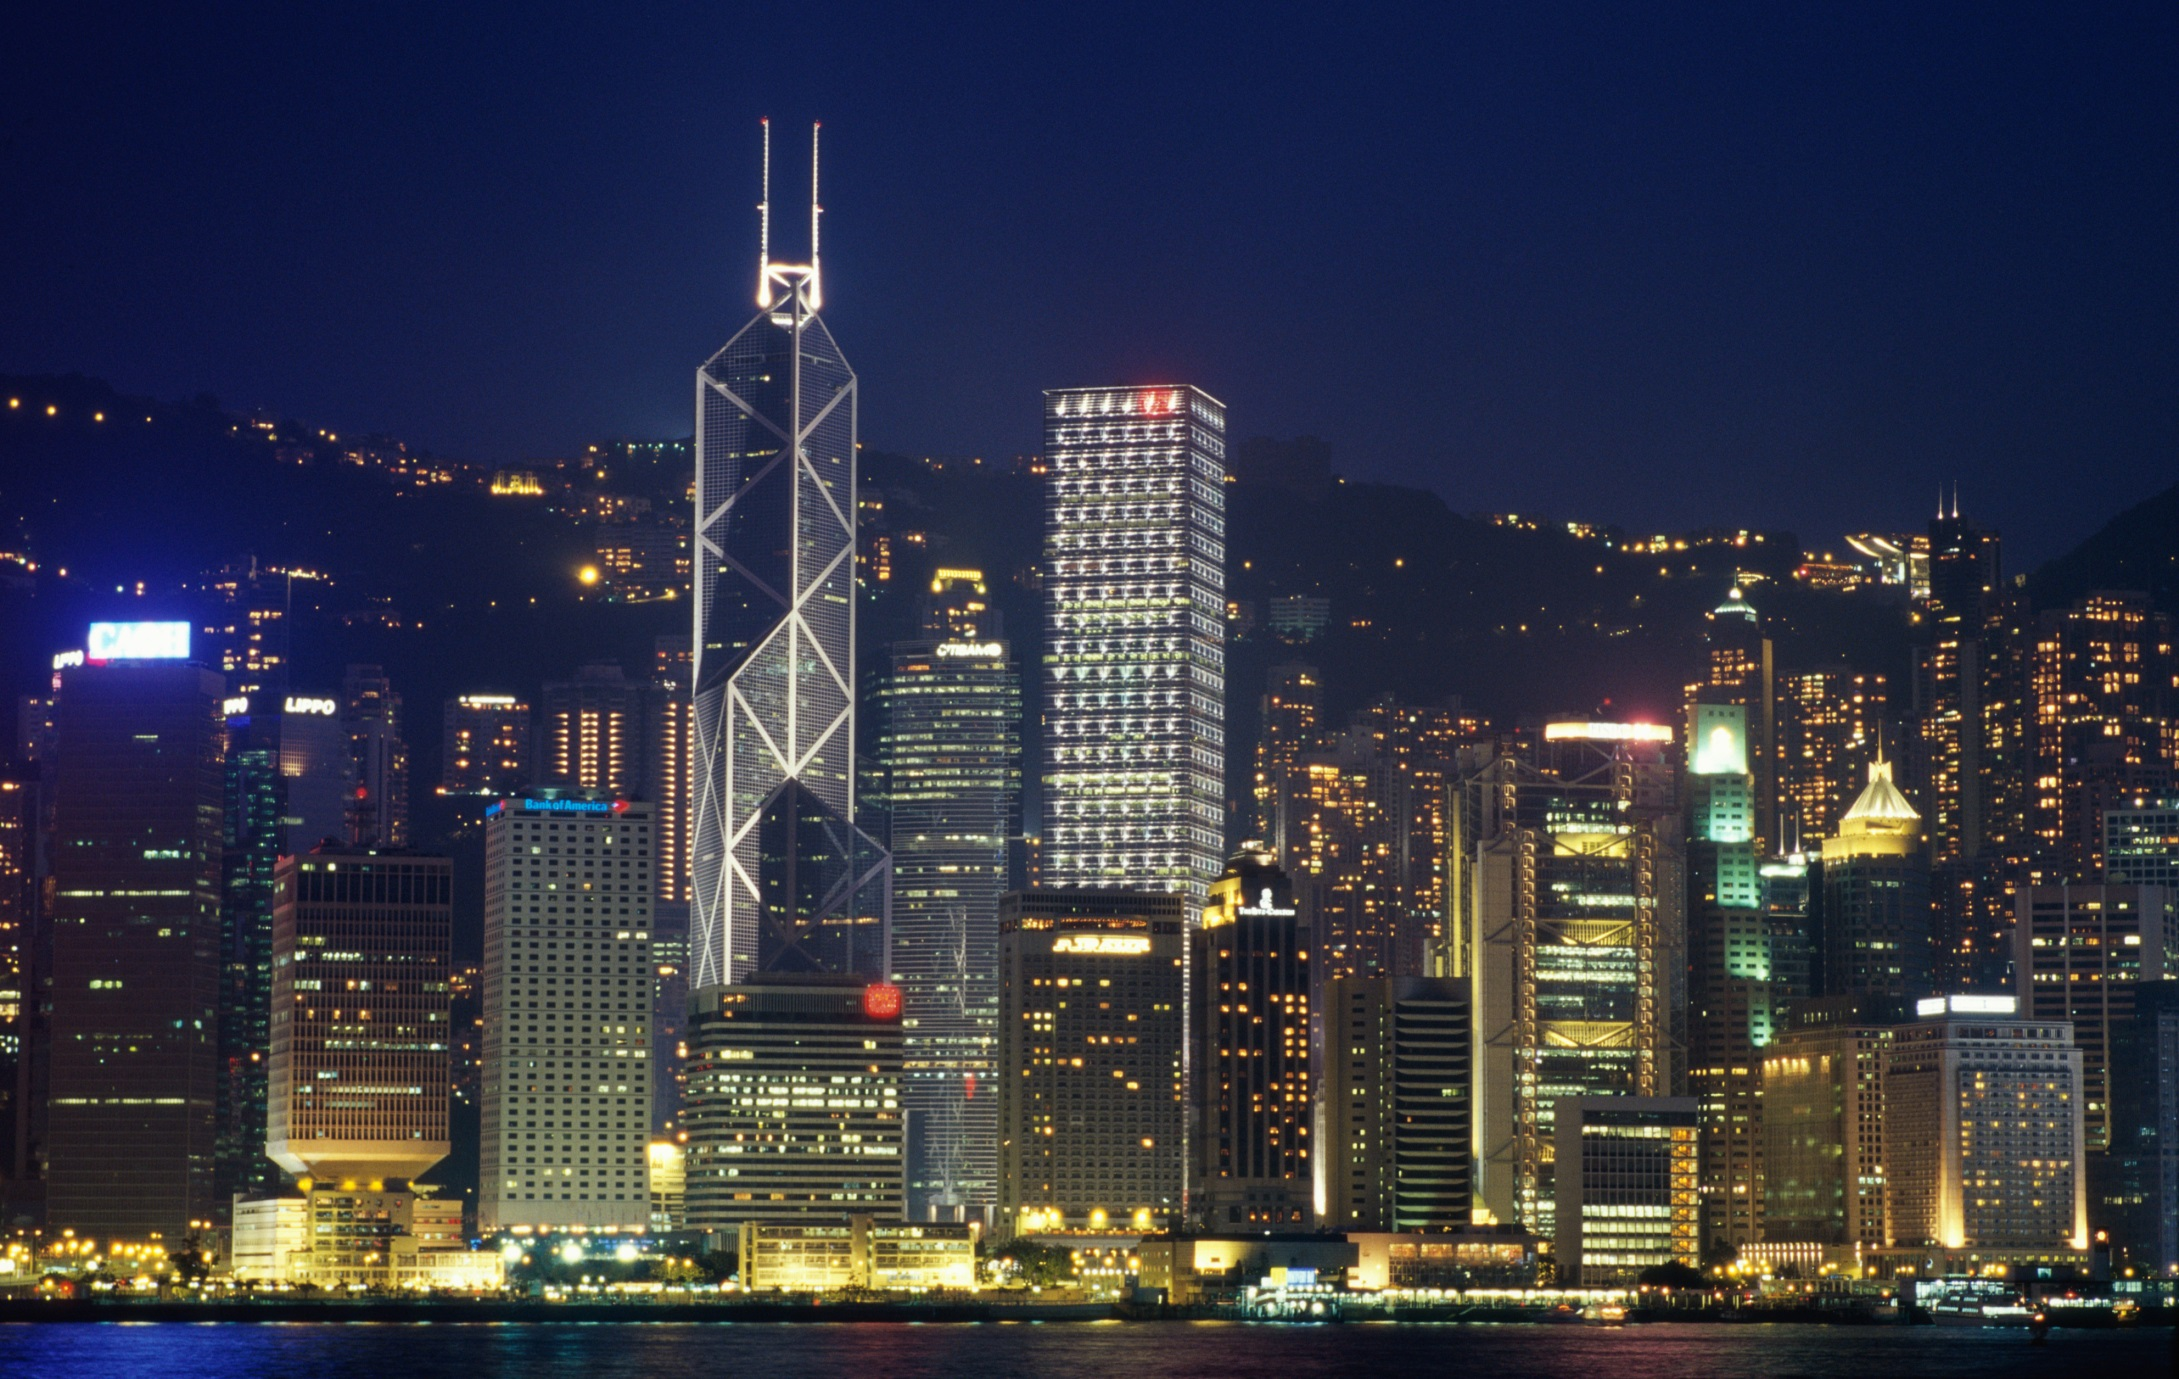 High angle view of a city lit up at night, Hong Kong, China